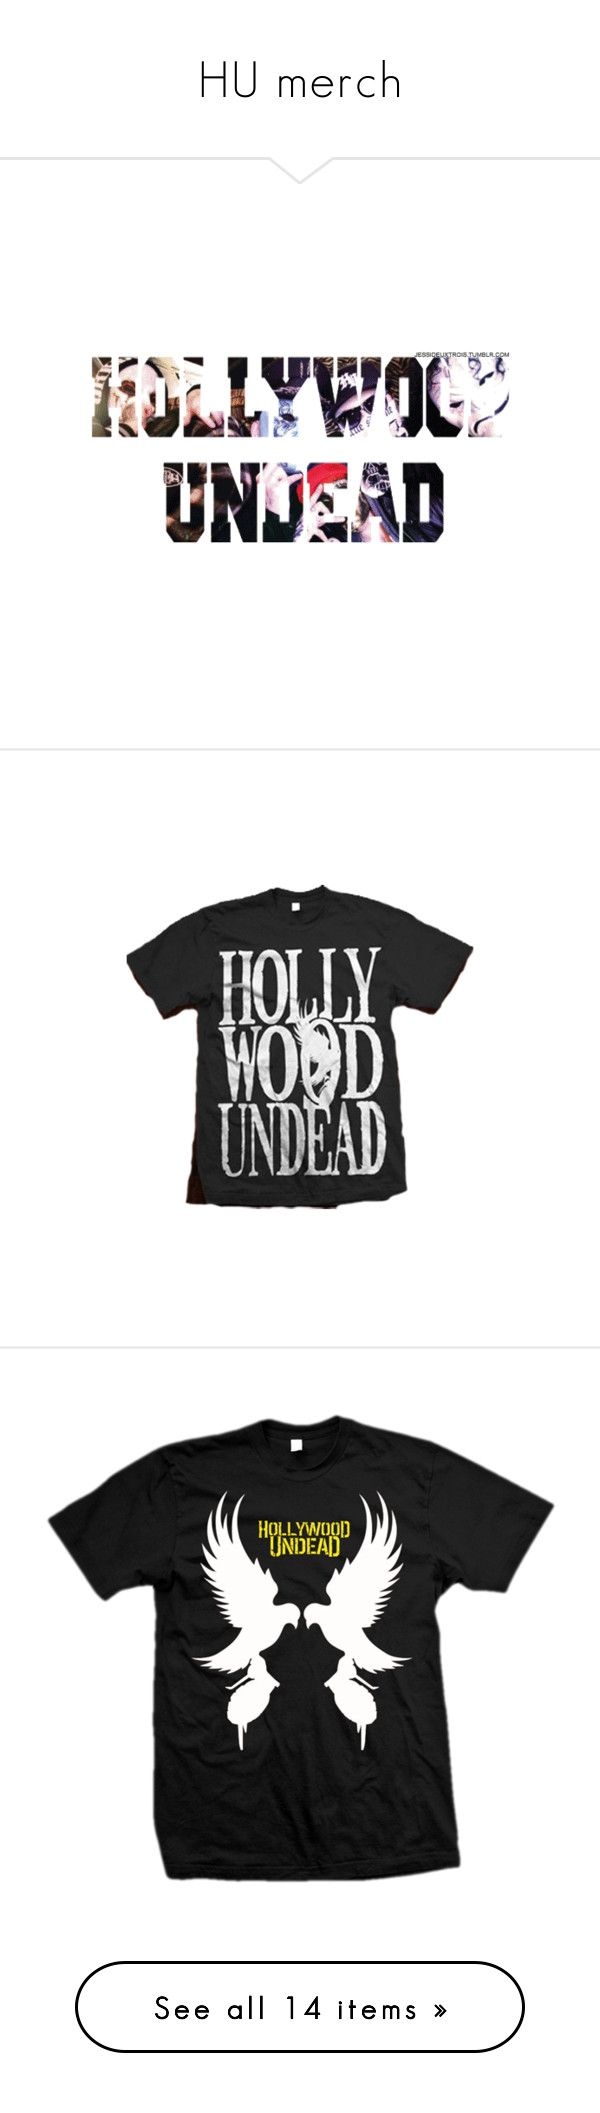 """""""HU merch"""" by bandaidkid ❤ liked on Polyvore featuring music, band, hollywoodundead, hollywood undead, sayings, backgrounds, tops, t-shirts, shirts and rock tops"""